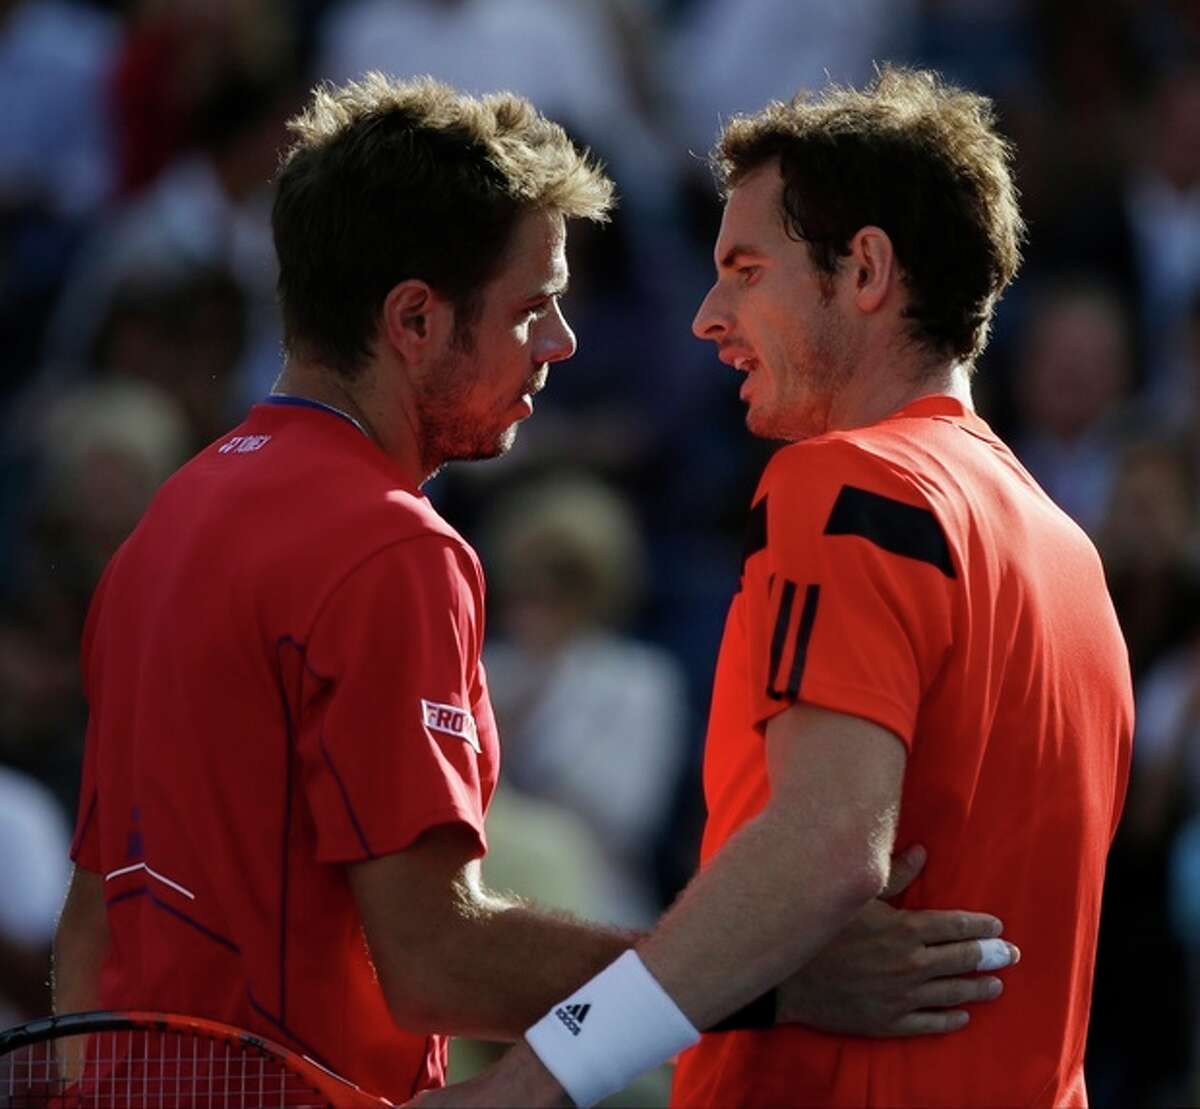 Stanislas Wawrinka, of Switzerland, left, greets Andy Murray, of Great Britain, at the net after beating him in straight sets during the quarterfinals of the 2013 U.S. Open tennis tournament, Thursday, Sept. 5, 2013, in New York. (AP Photo/David Goldman)